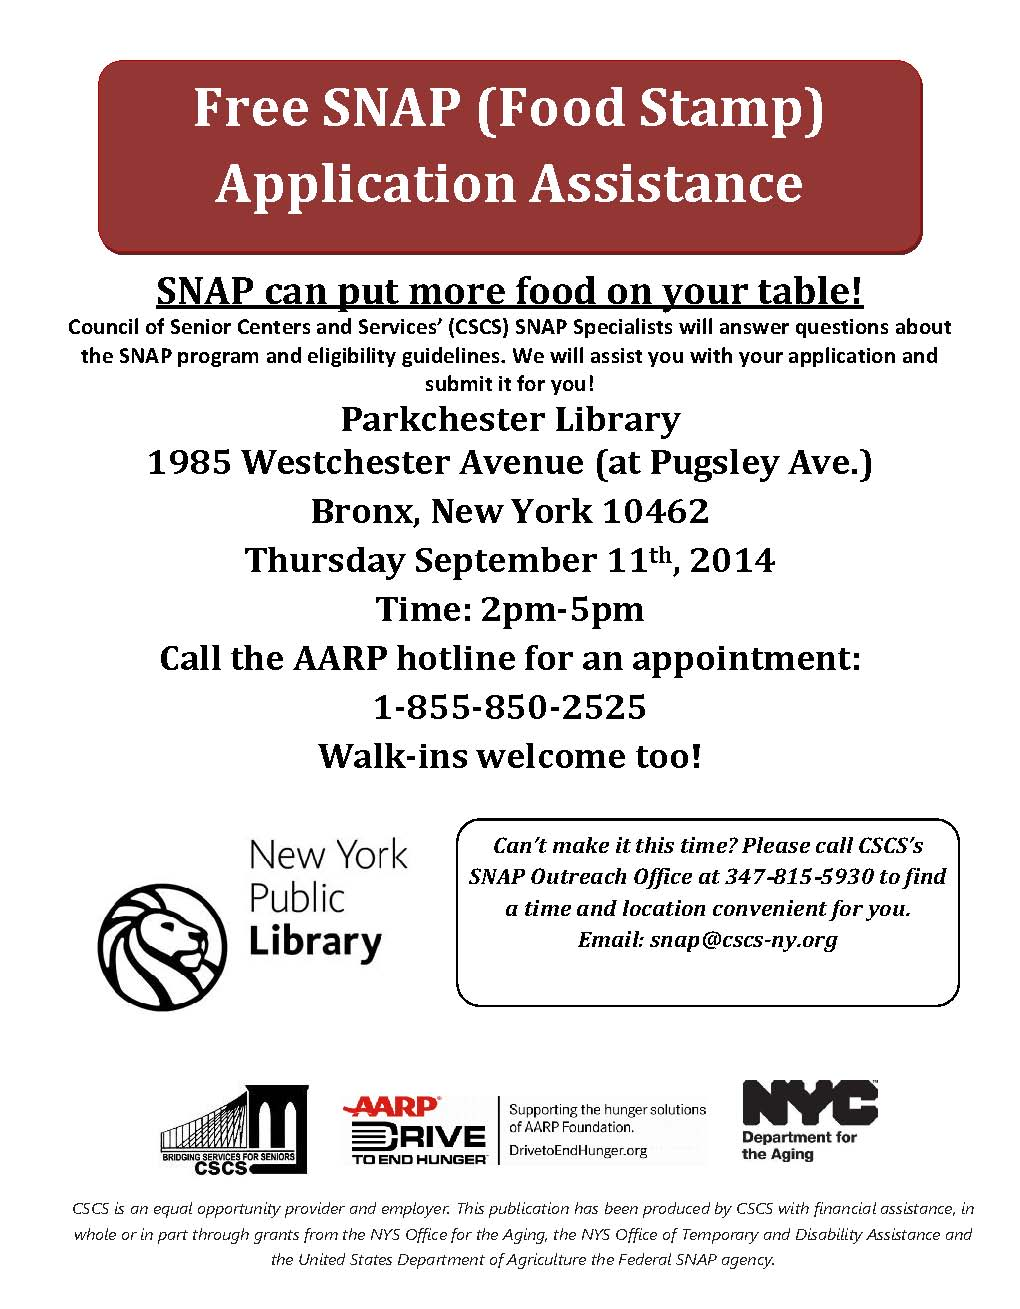 CSCS_AARP_SNAP_Application_Assistance_Parkchester_Library_September_11,_2014_English_&_Spanish_(1)_Page_1